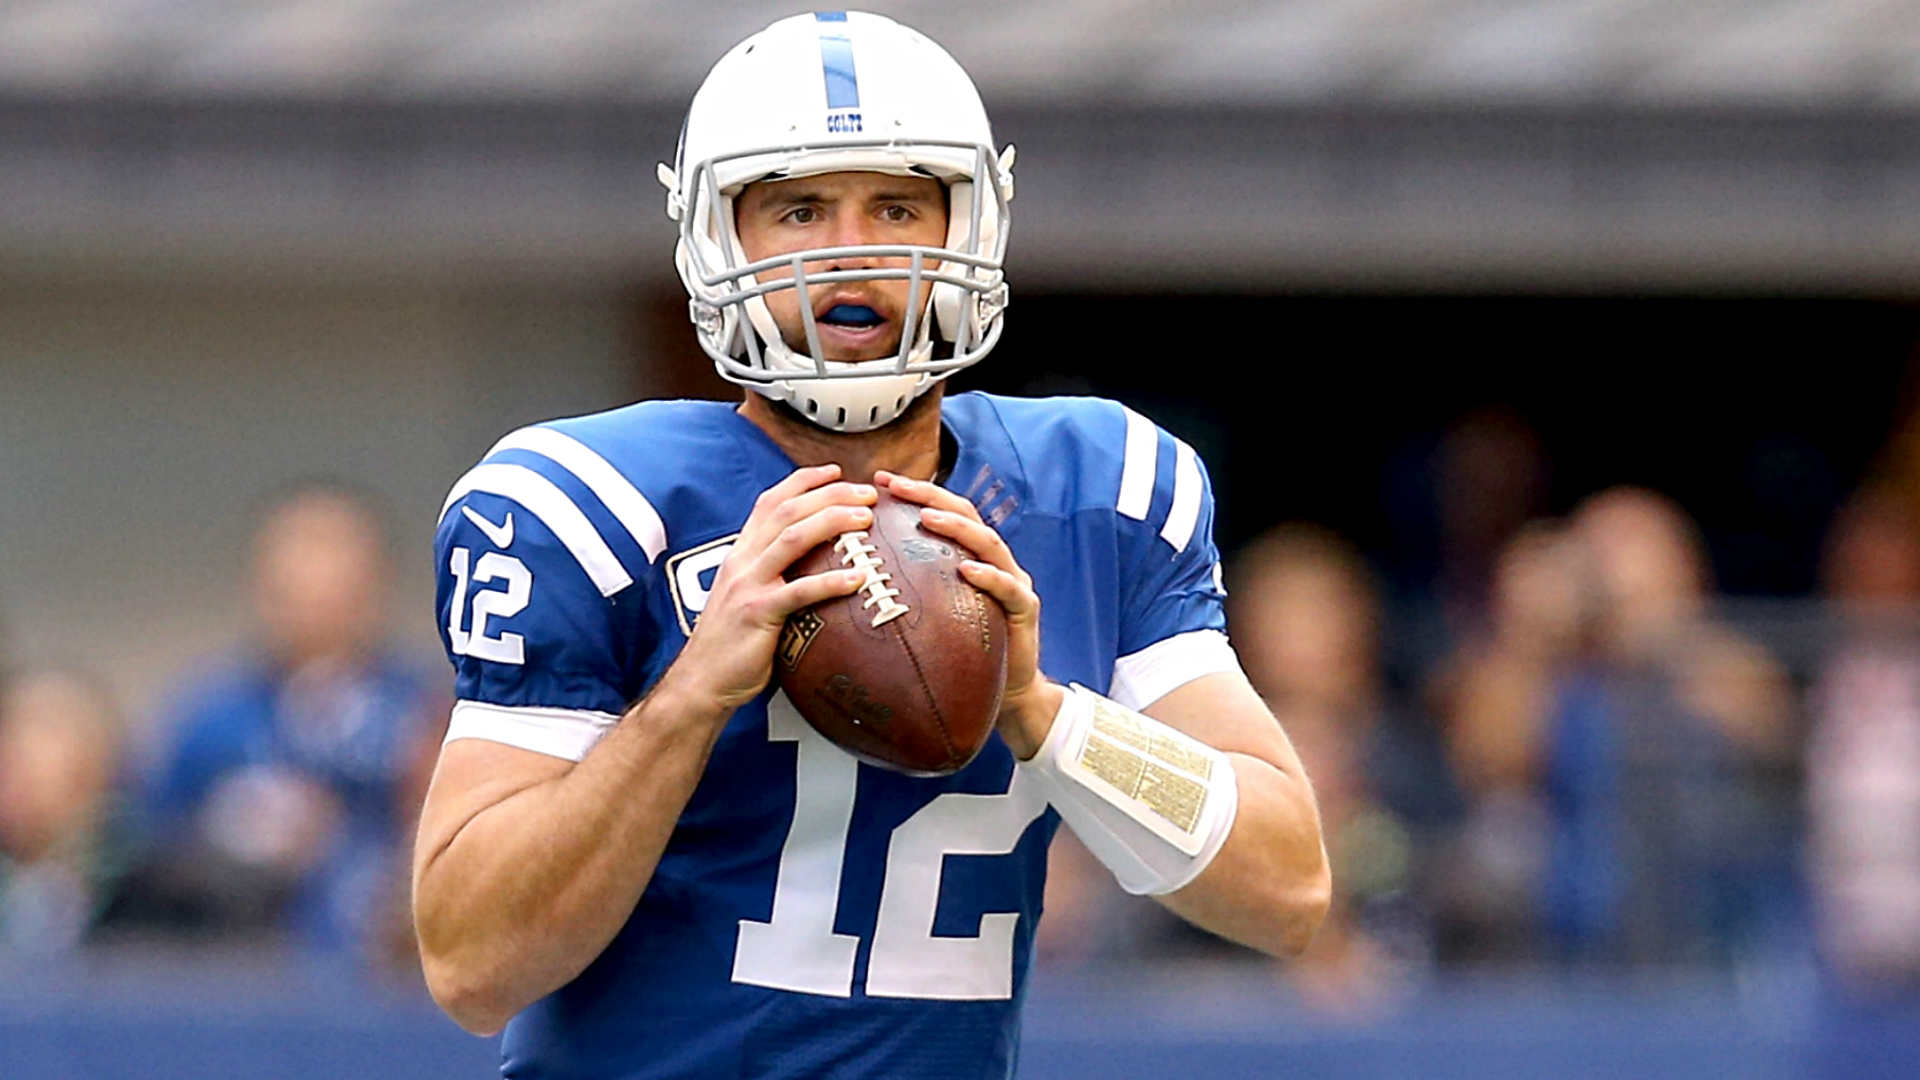 Colts owner Jim Irsay offers vague update on Andrew Luck